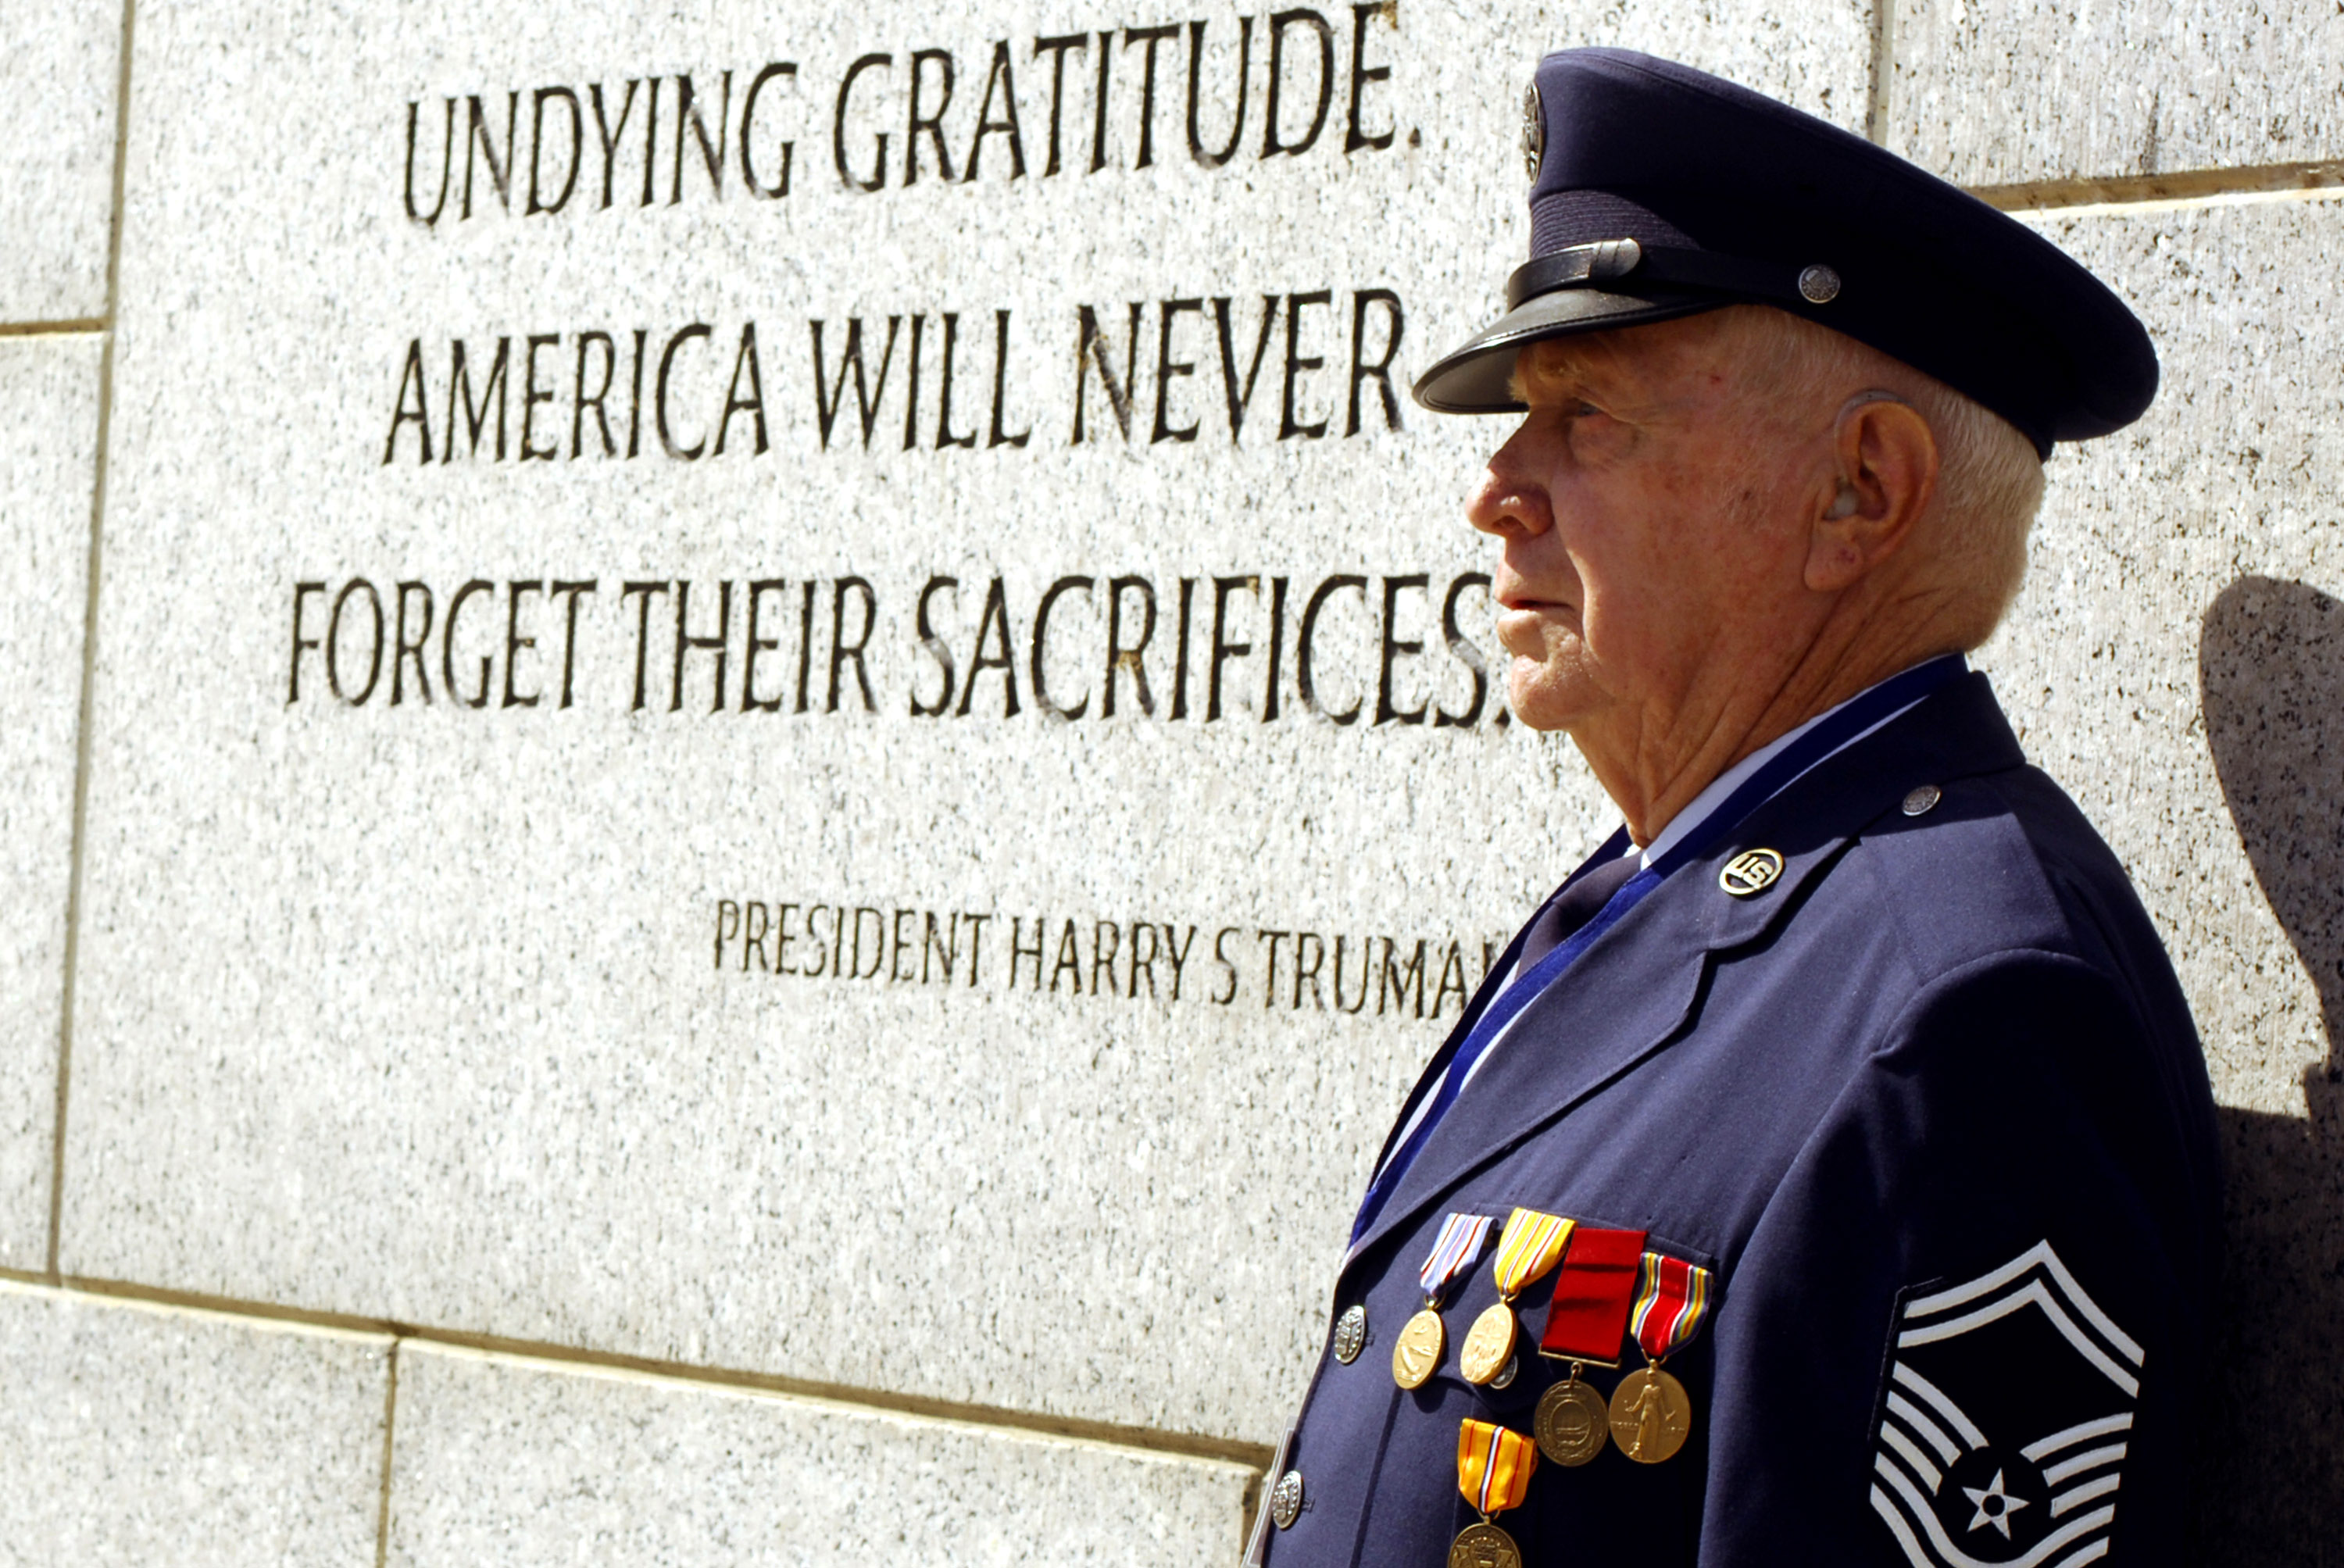 Retired Senior Master Sgt. Billy Neil poses near a quote by President Harry Truman at the National World War II Memorial during Hero Flight 2007 in Washington, D.C., Sept. 15. Hero Flight is an all-volunteer program that sets up trips to allow as many World War II veterans as possible to visit the National World War II Memorial. (U.S. Air Force photo/Staff Sgt. Suzanne Day)